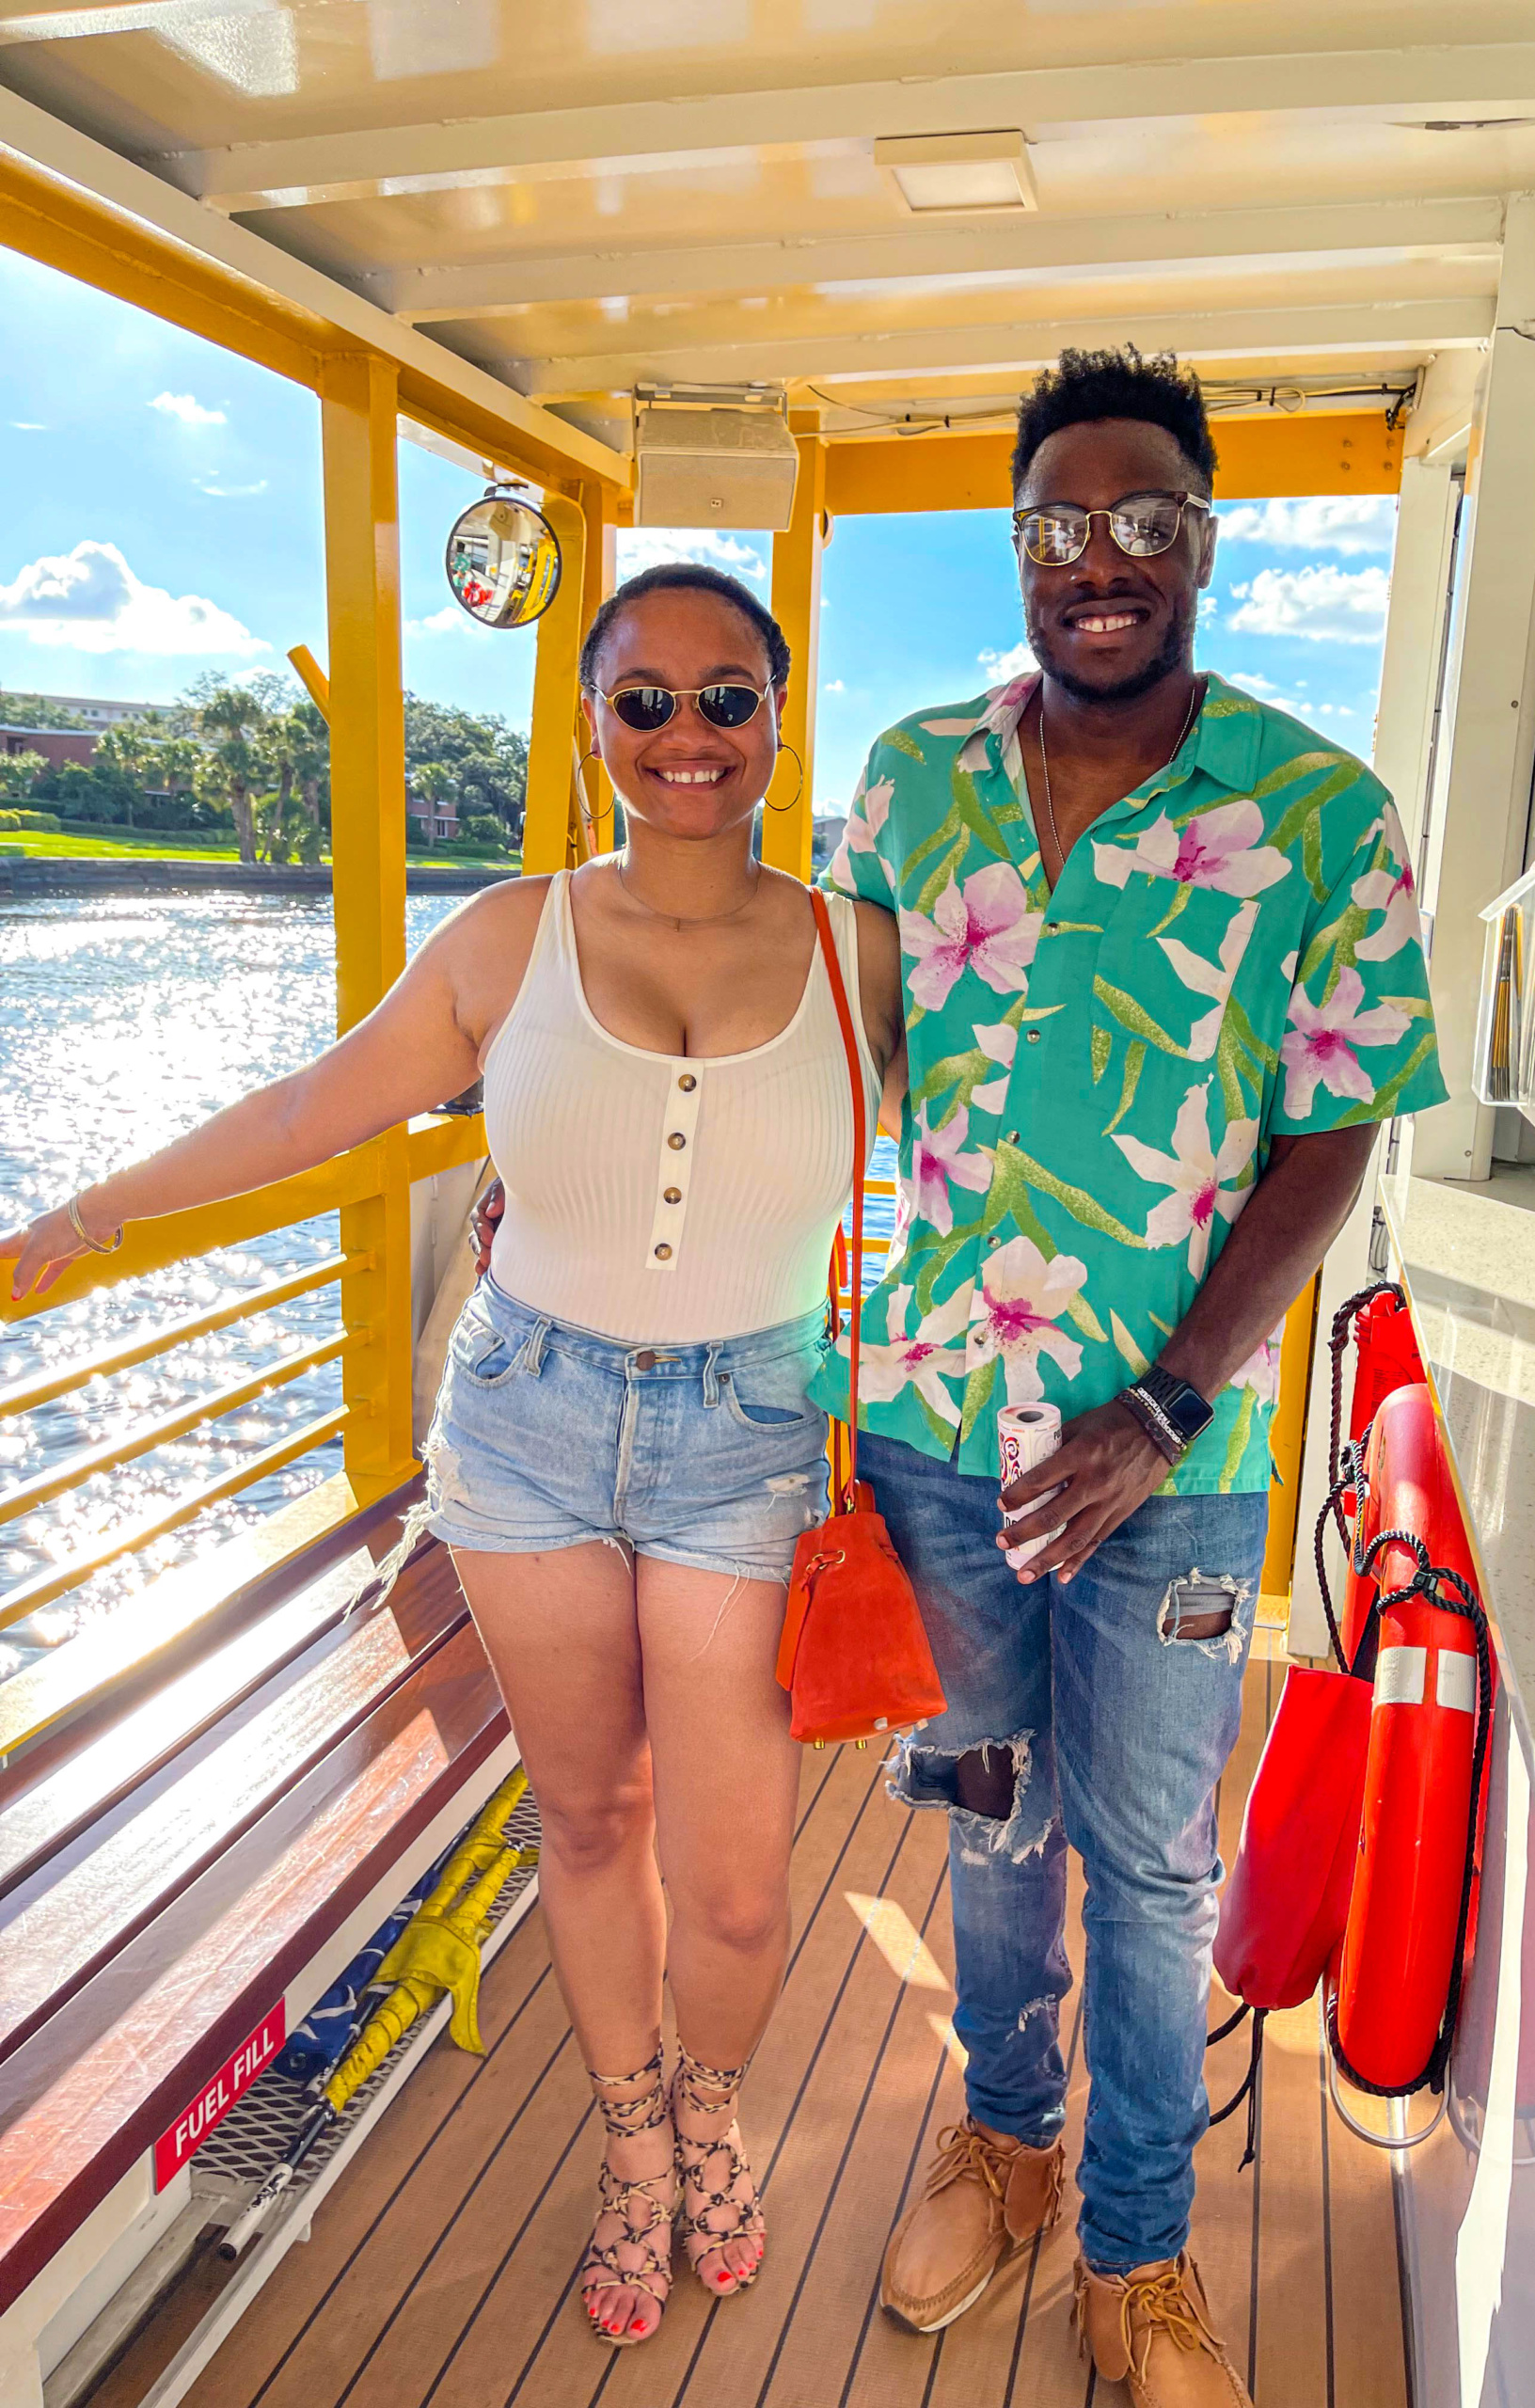 Visit Tampa Bay: Day 2 of How To Be a Tourist in Your Own City